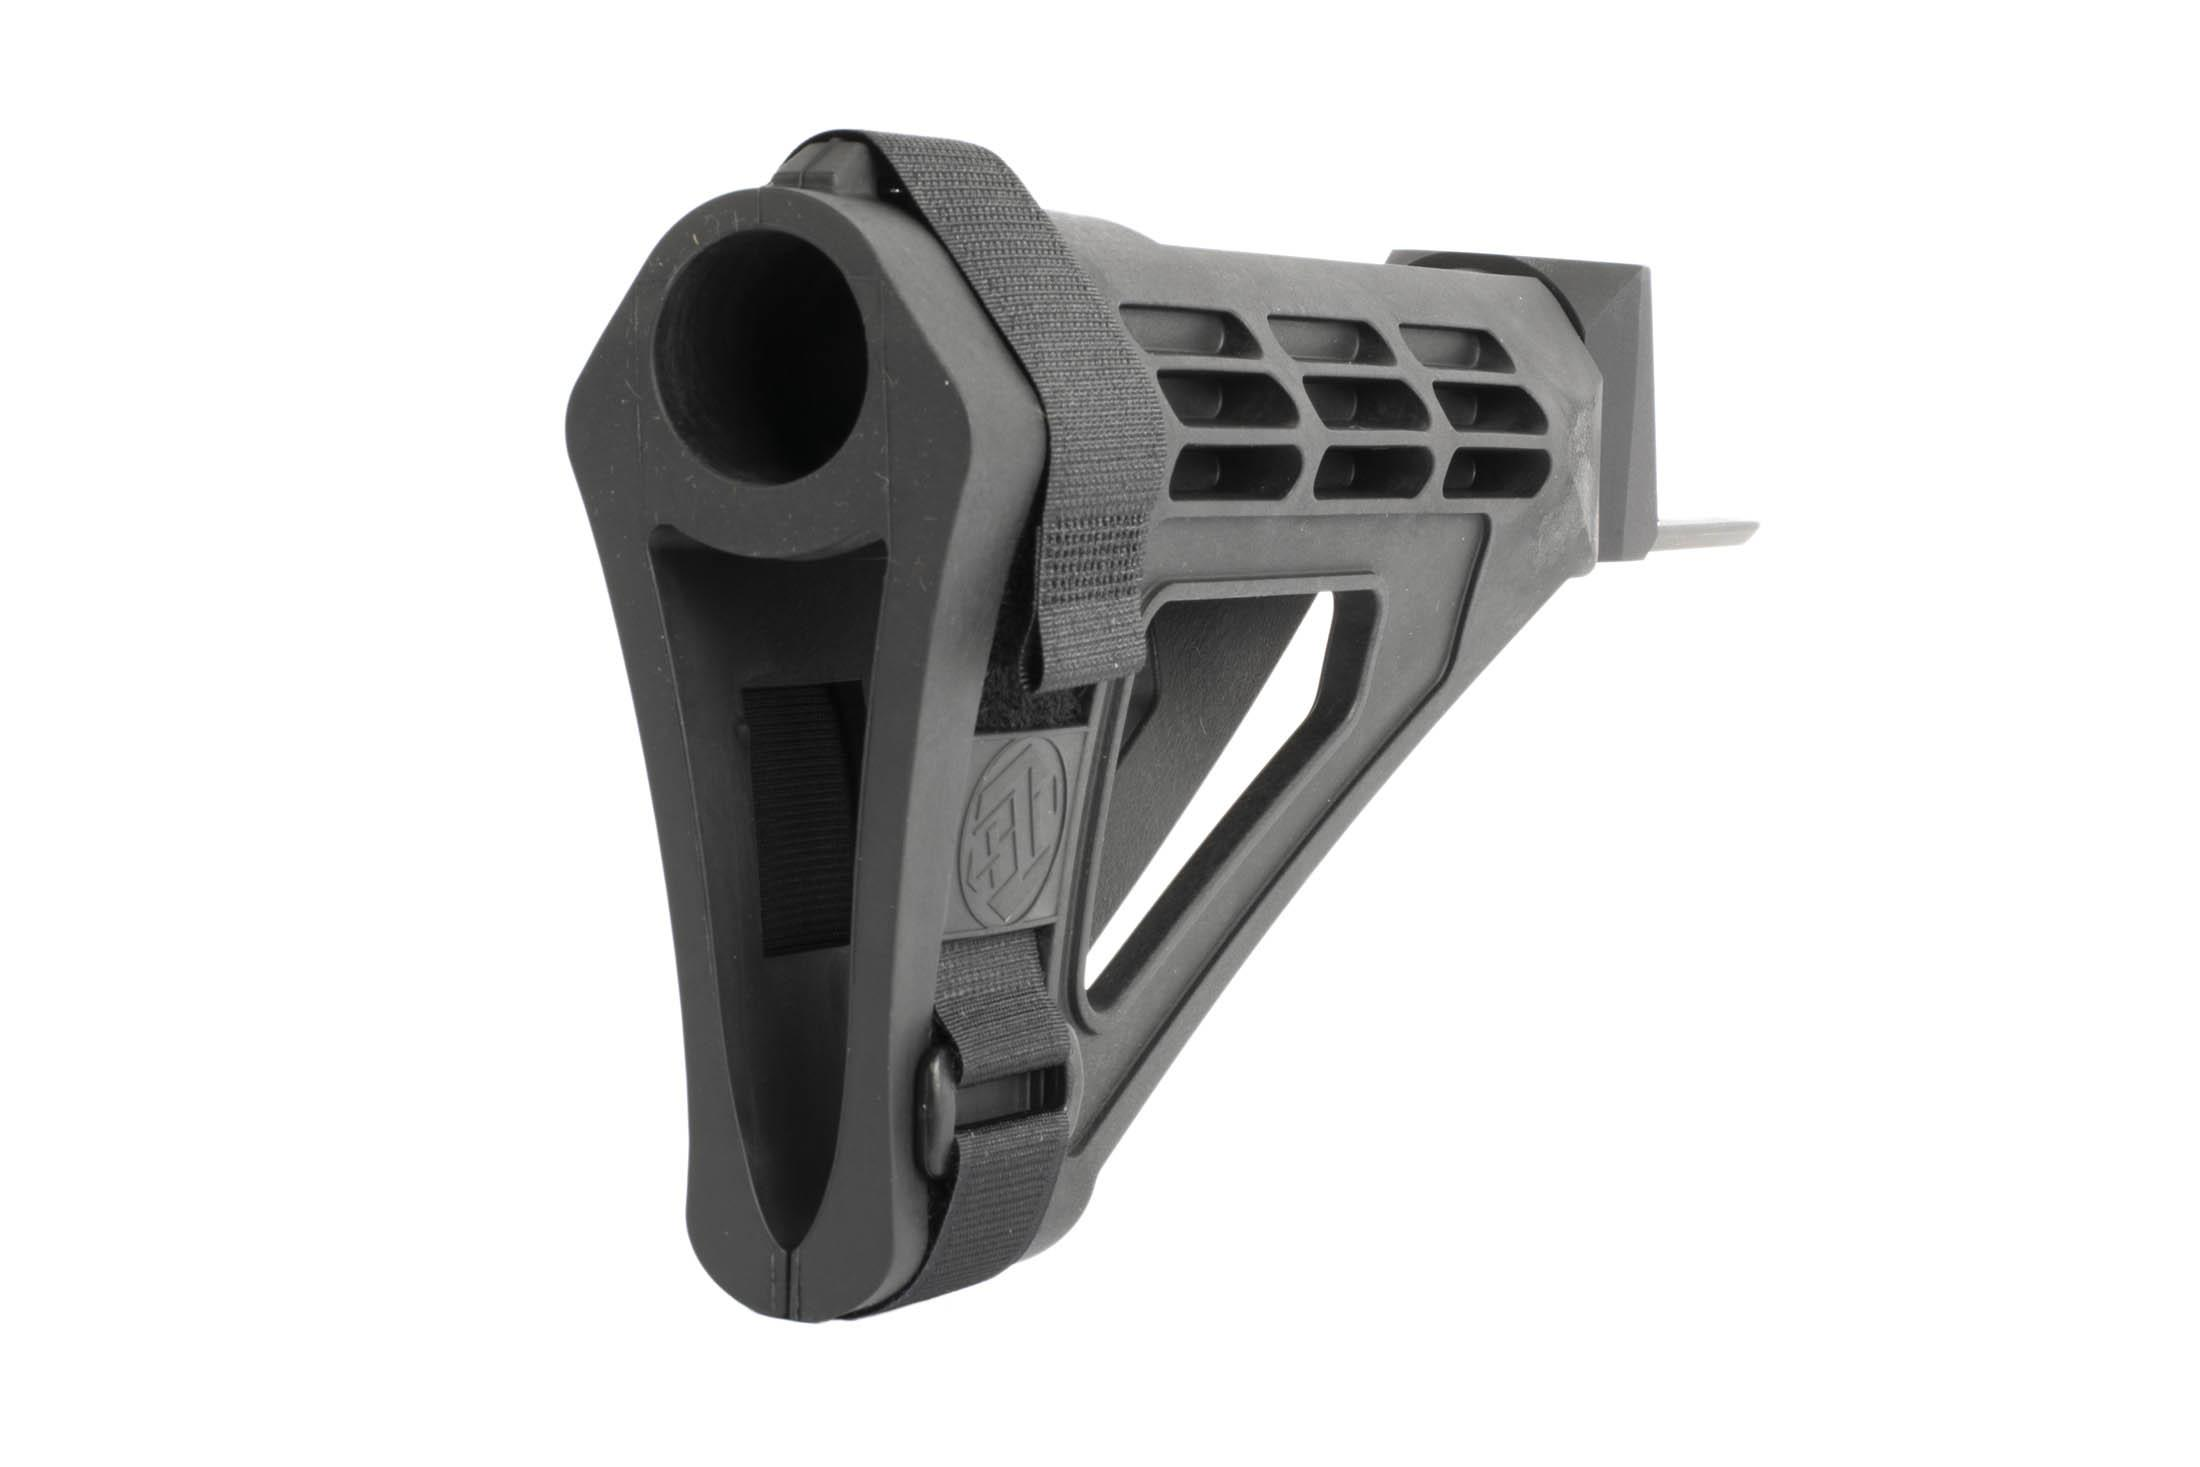 SB Tactical black pistol stabilizing brace has an adjustable strap to perfectly fit the needs of any shooter